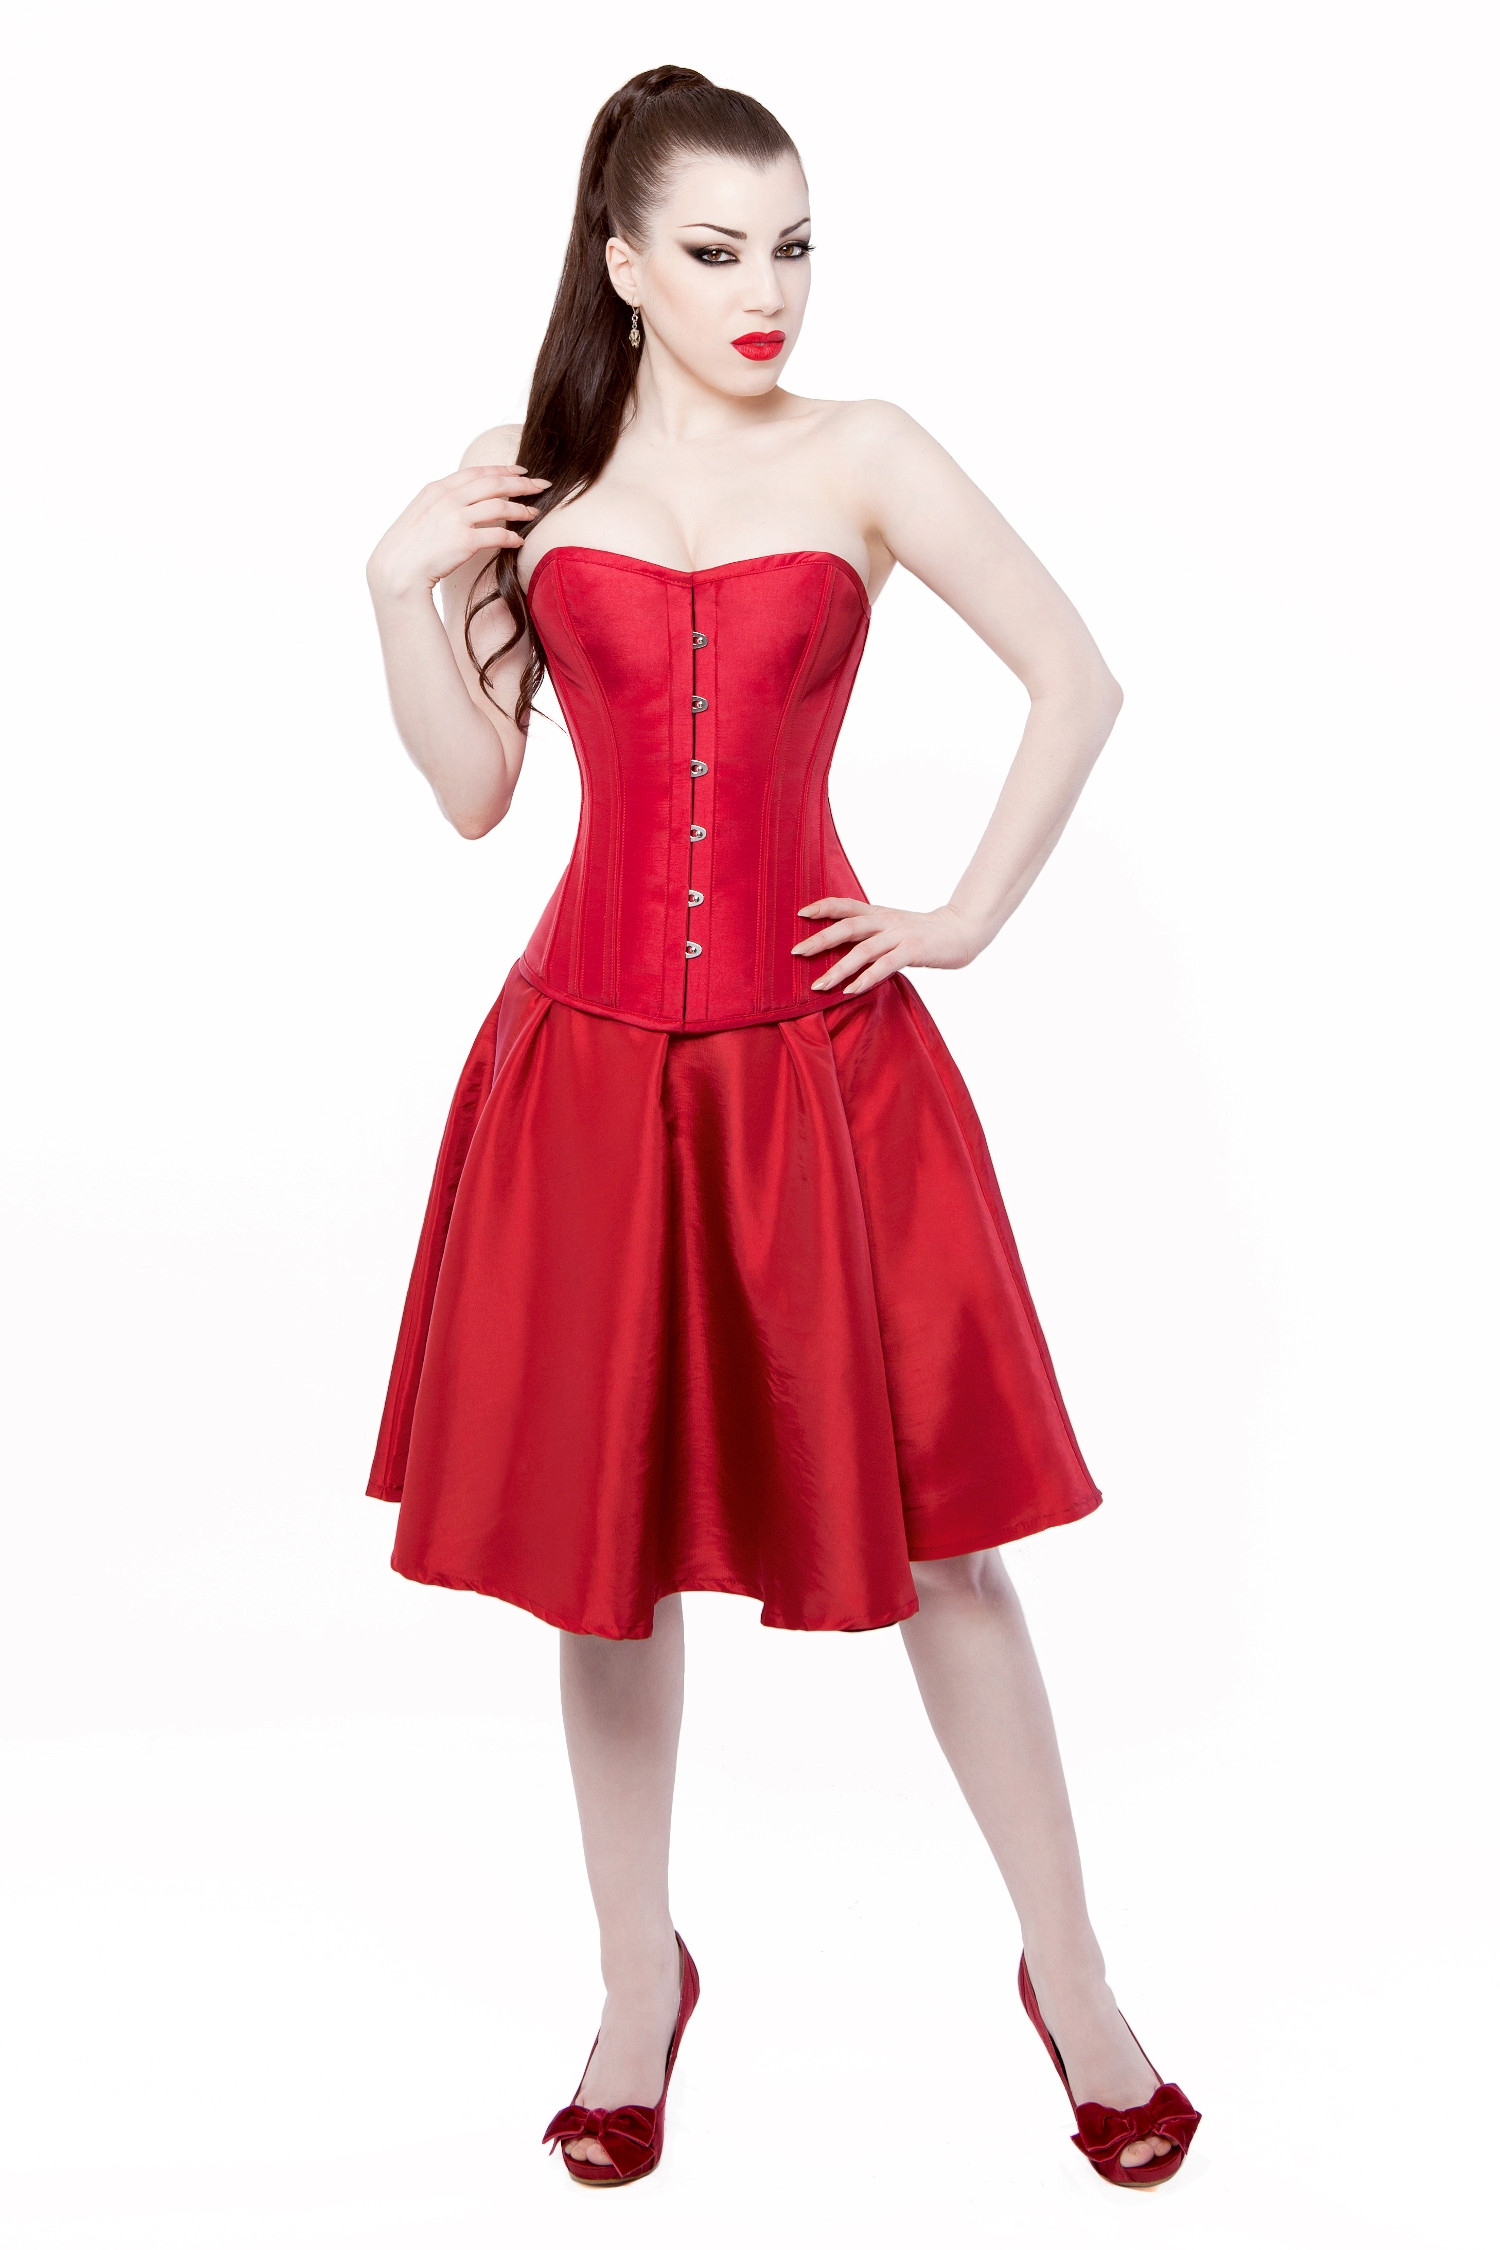 Red Taffeta Steel Boned Overbust Corset By Playgirl